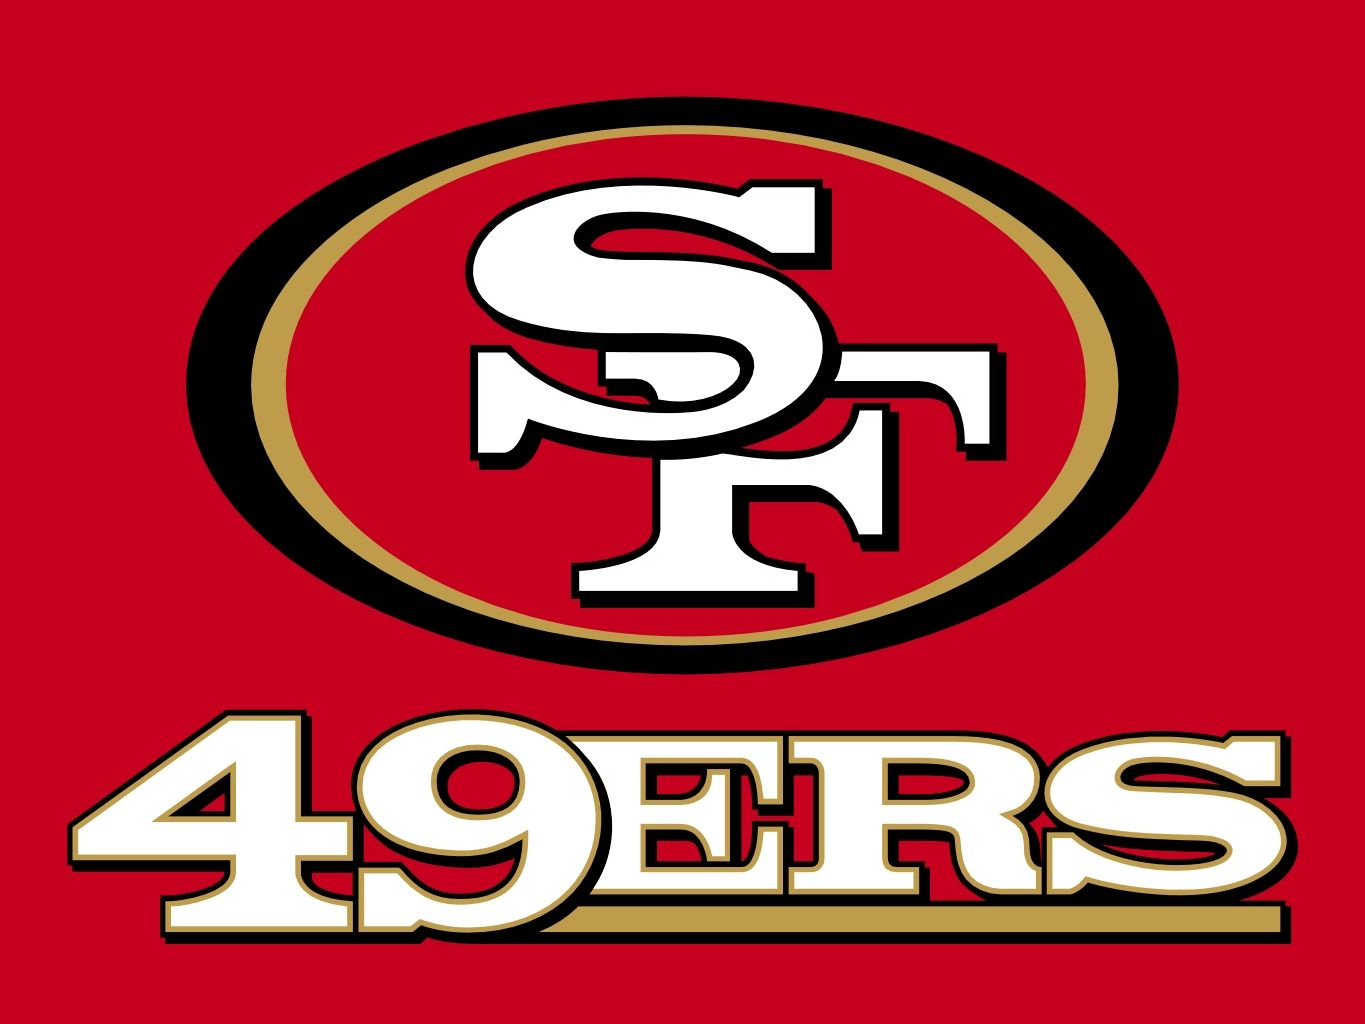 San francisco 49ers logo httpsf49ers httppinterest san francisco 49ers logo httpsf49ers http voltagebd Gallery